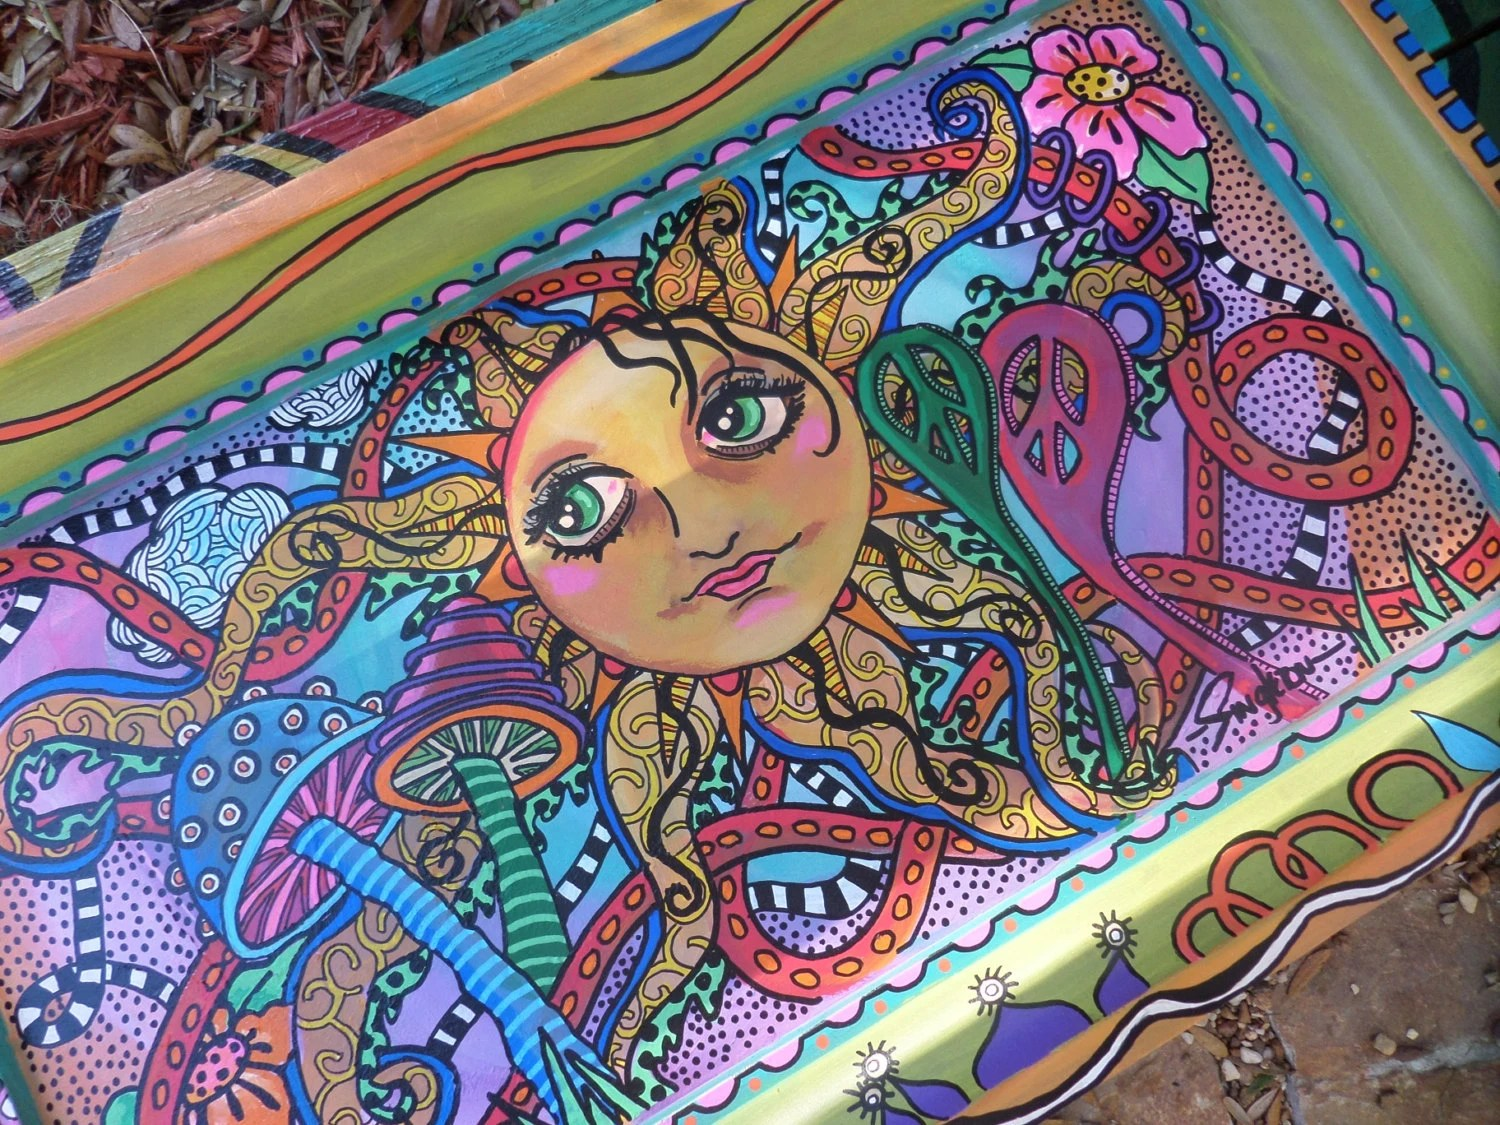 Pinturas Hippies Hippie Art Singleton Hippie Art Sunshine Hippie Painting